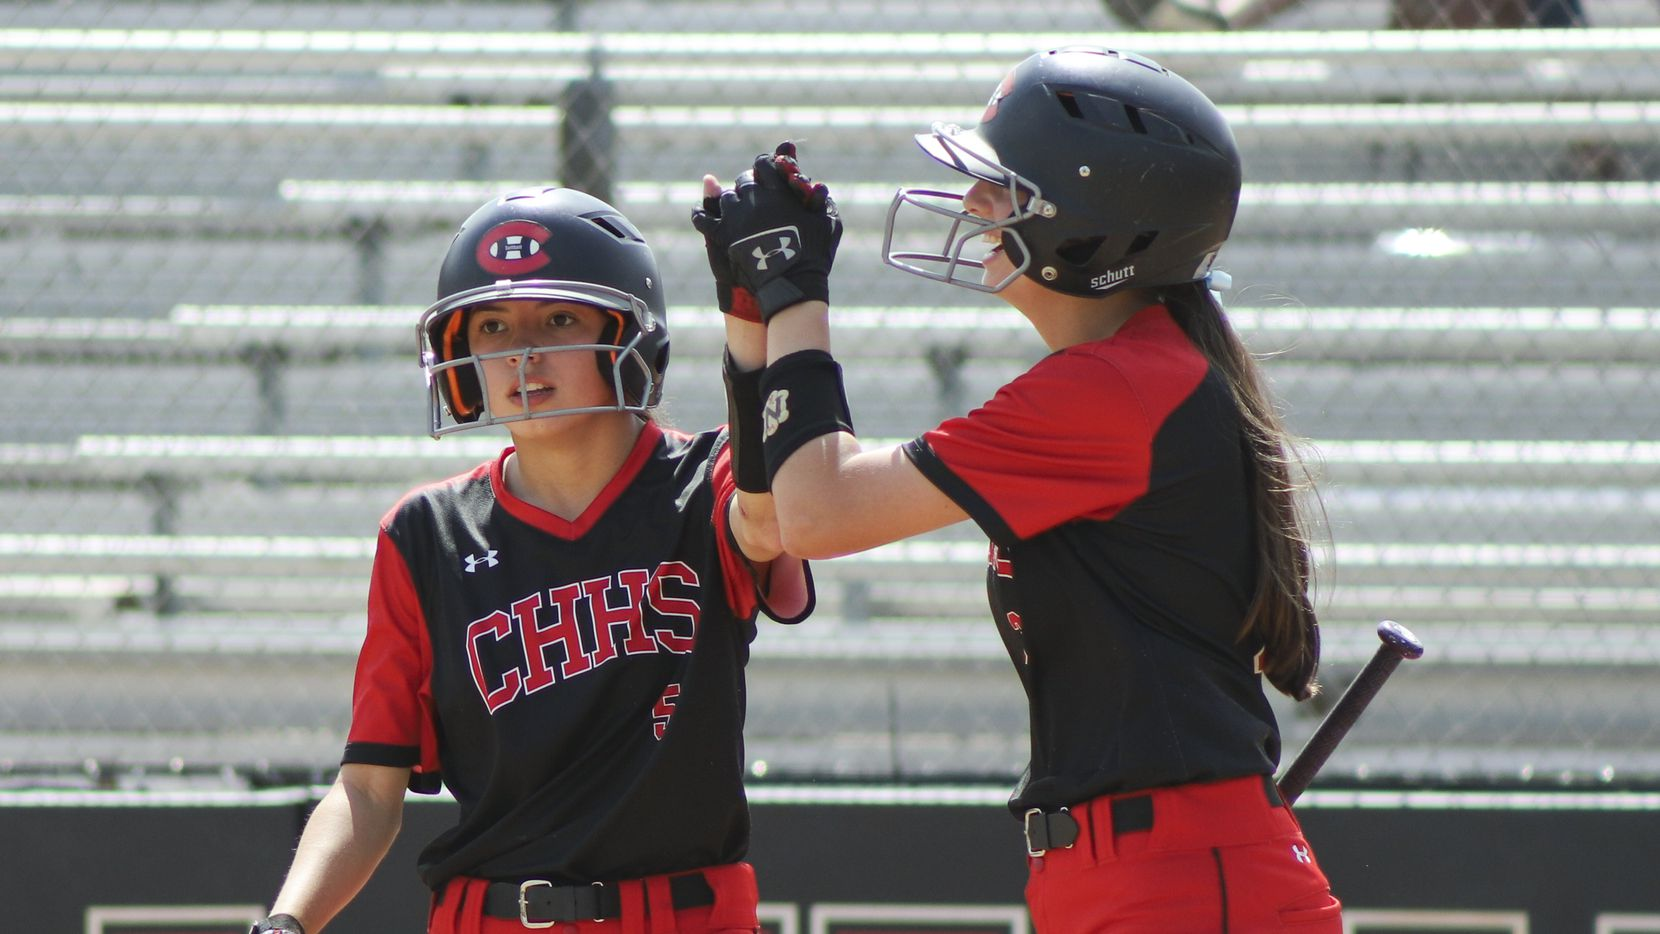 Colleyville Heritage second baseman Leah Perales (5) high fives catcher Alexis Perales (3) after the game-winning run during a softball Class 5A area-round playoff game against Mansfield Legacy in Colleyville, Texas on Saturday, May 8, 2021.